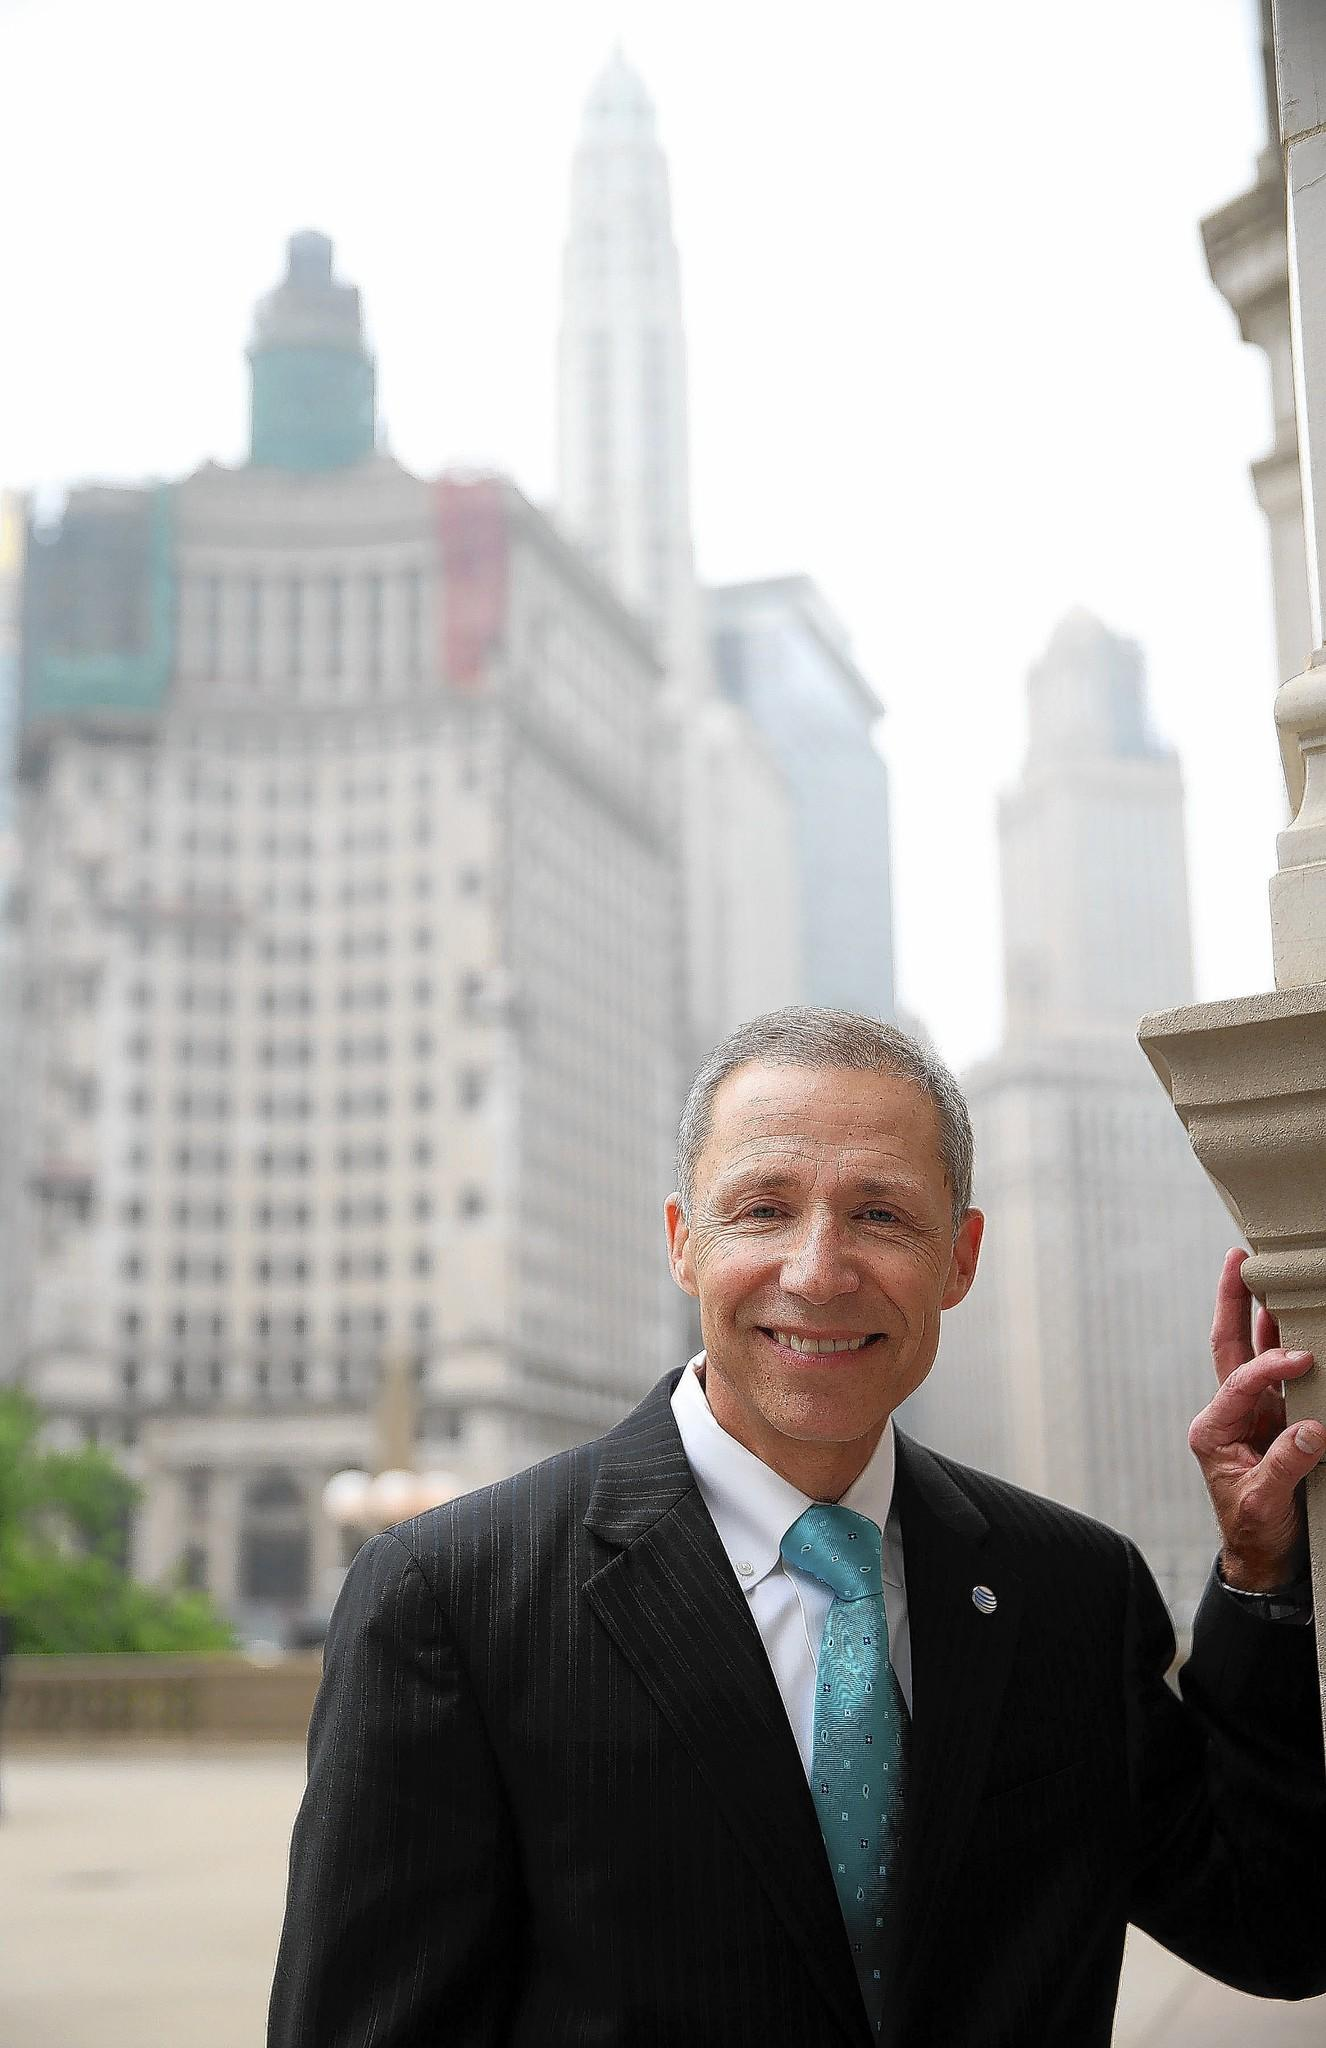 Paul La Schiazza has worked for AT&T for 35 years. He has been a member of the Chicagoland Chamber of Commerce board since 2007 and its vice chairman for two years.